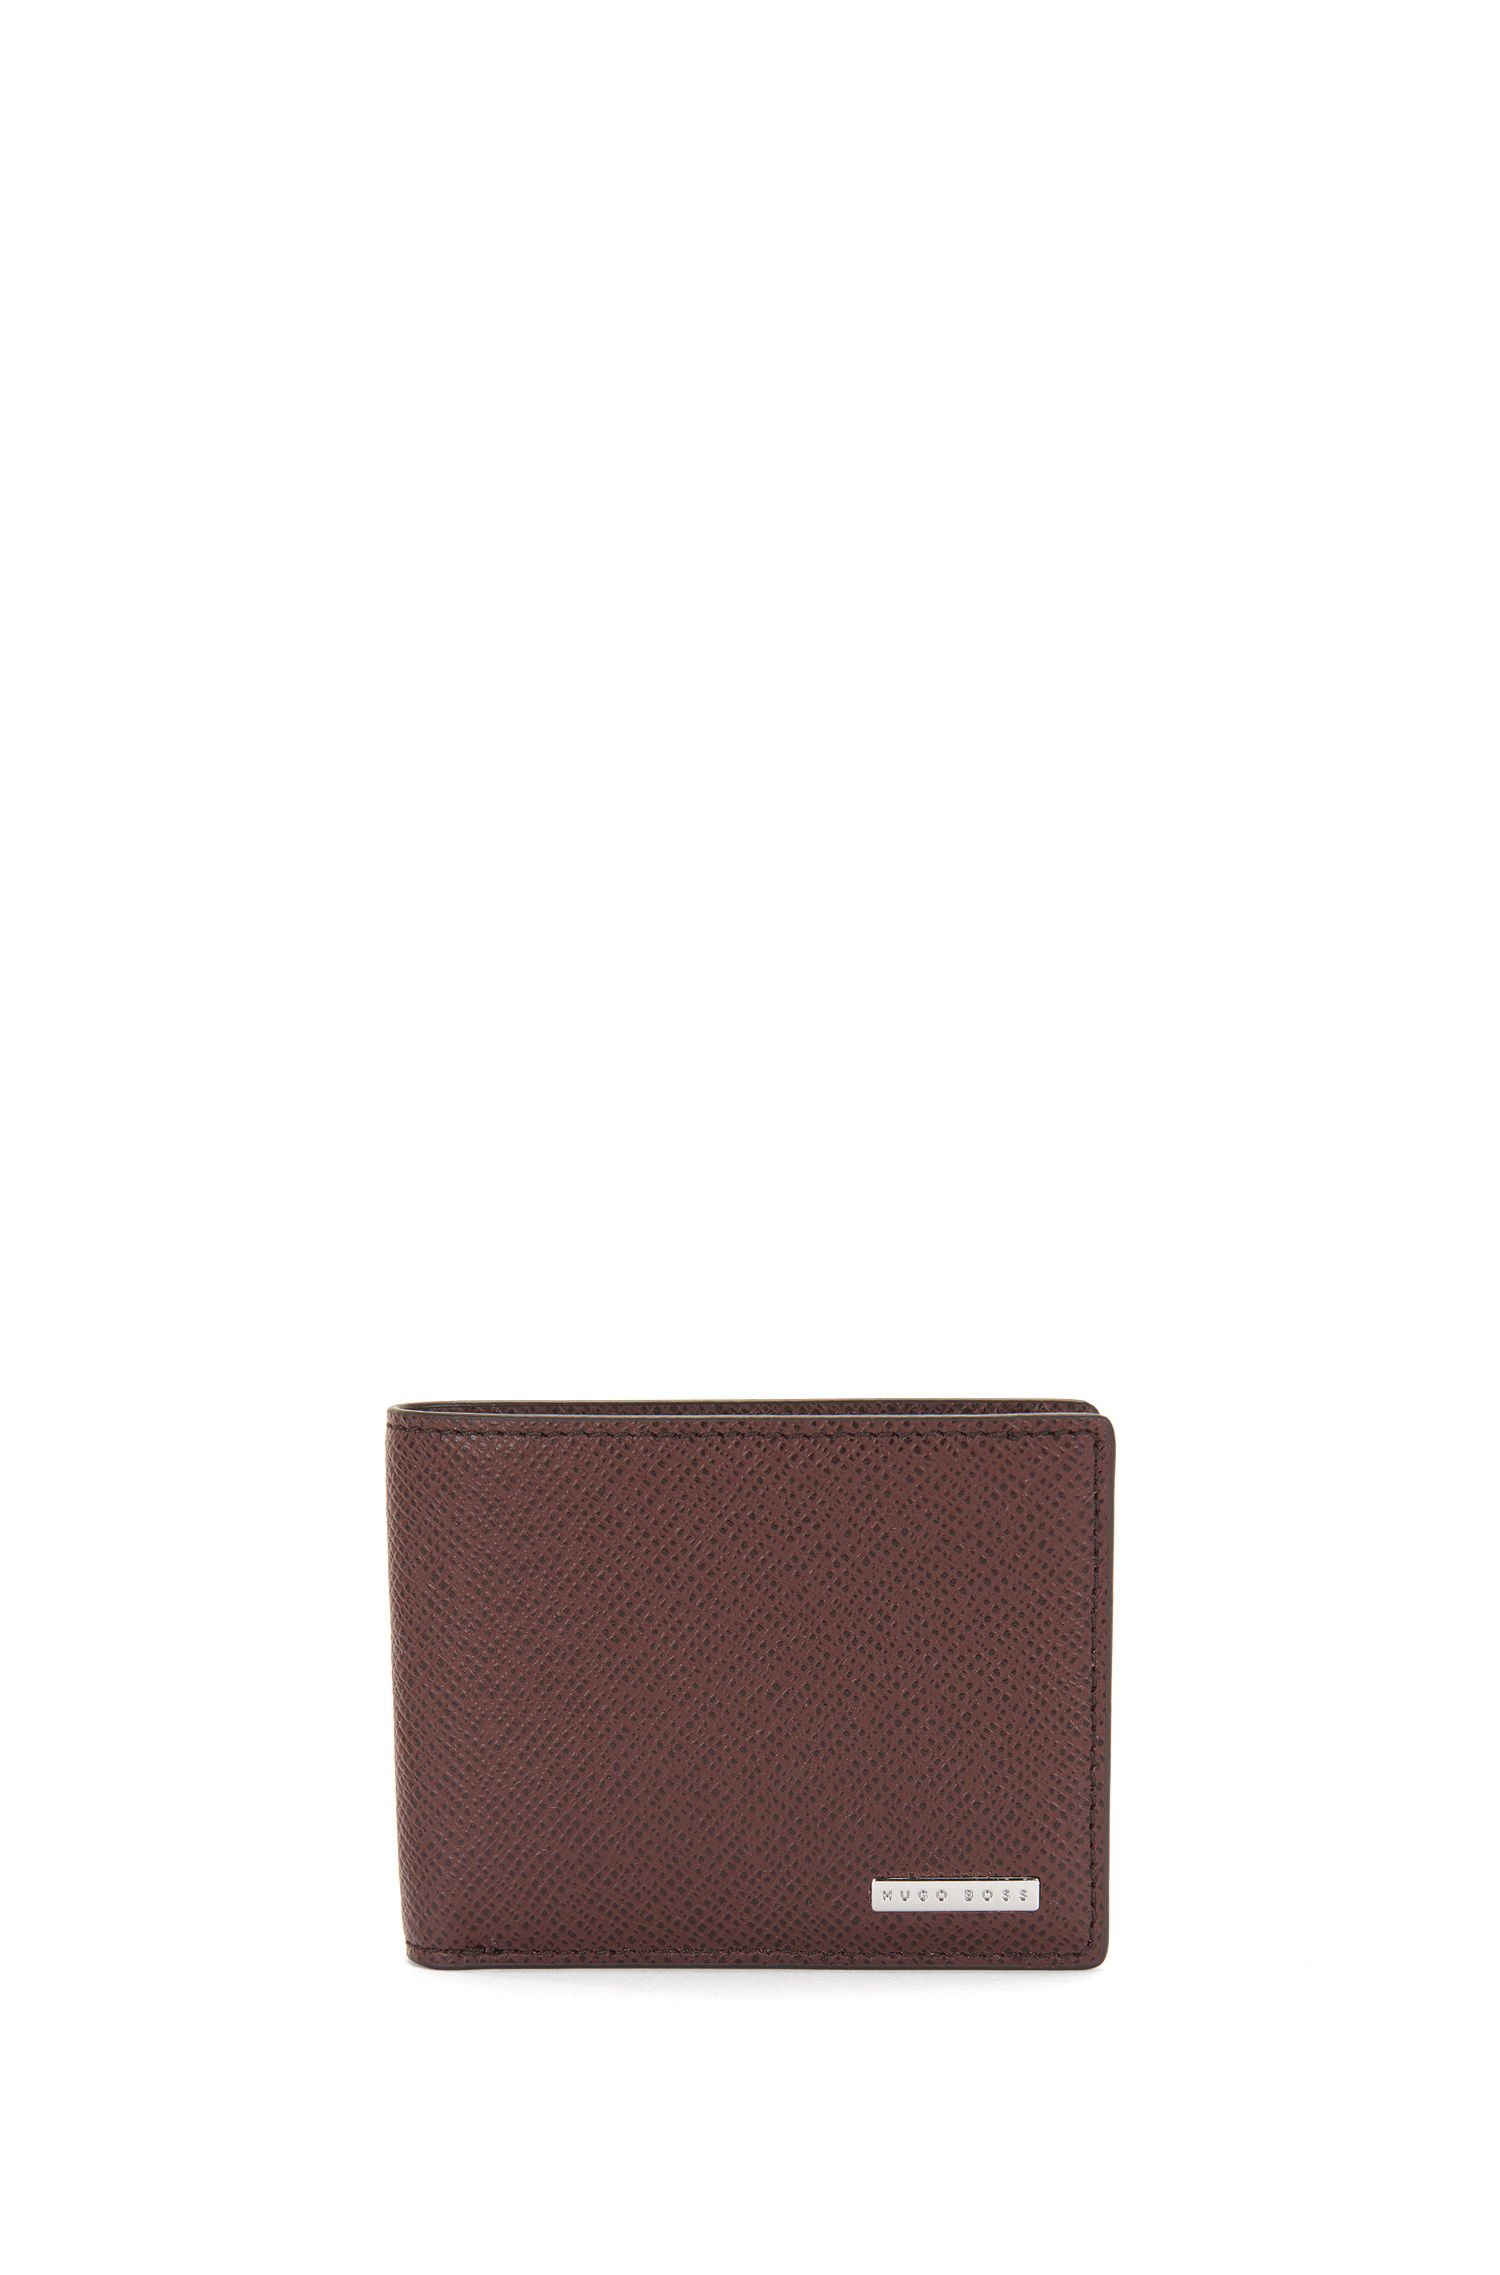 'Signature CC' | Calfskin Textured Wallet